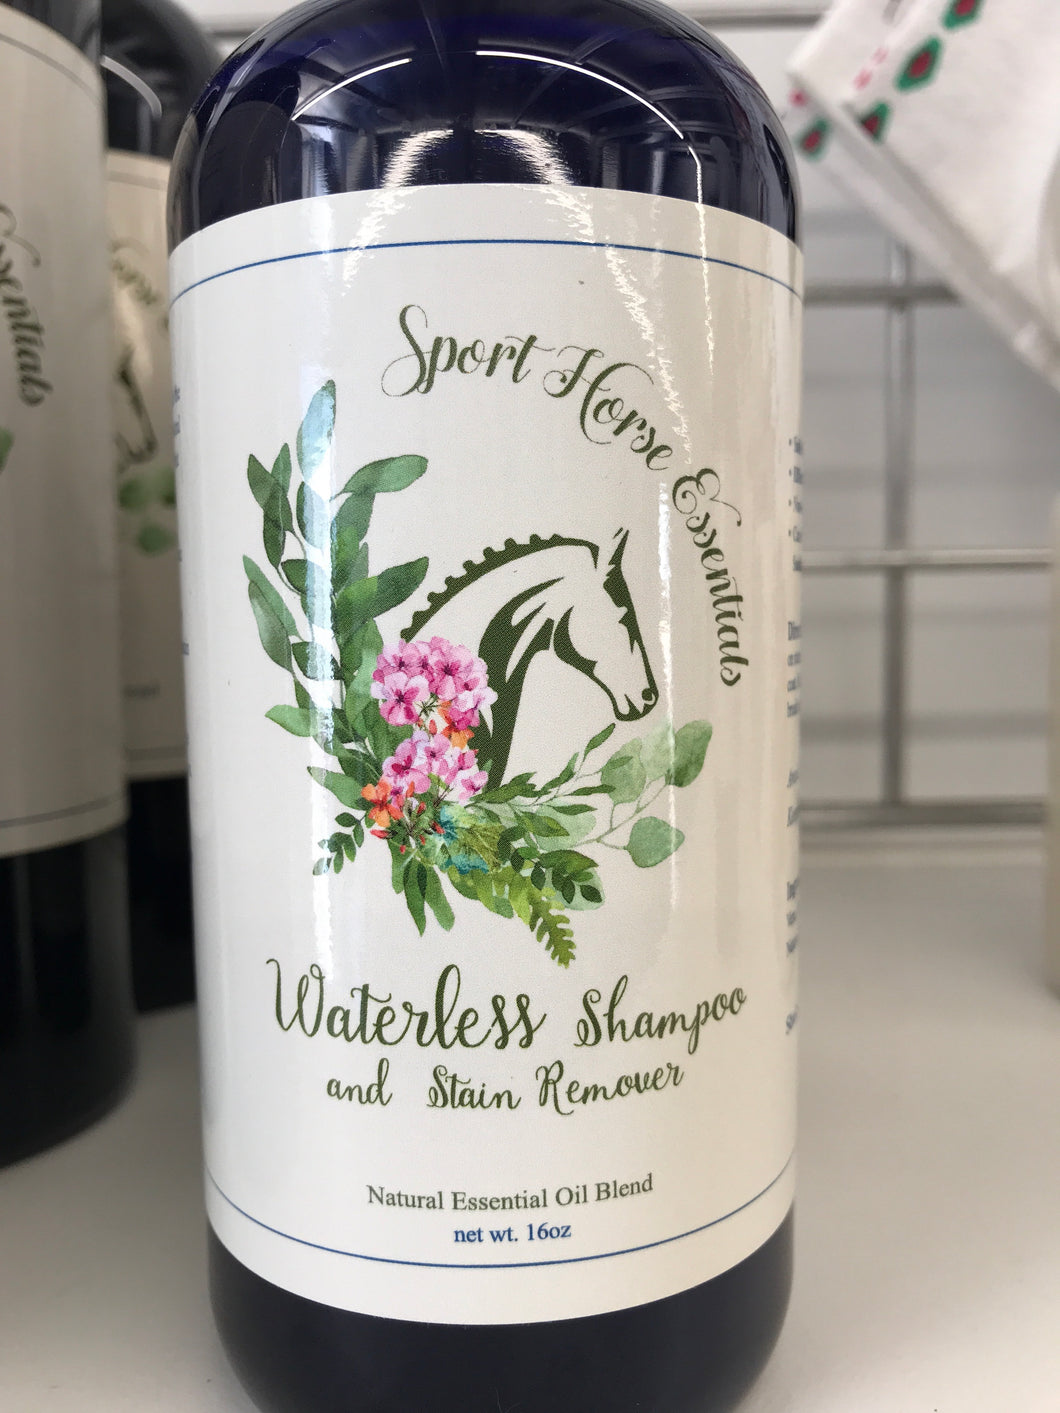 Waterless Shampoo and Stain Remover